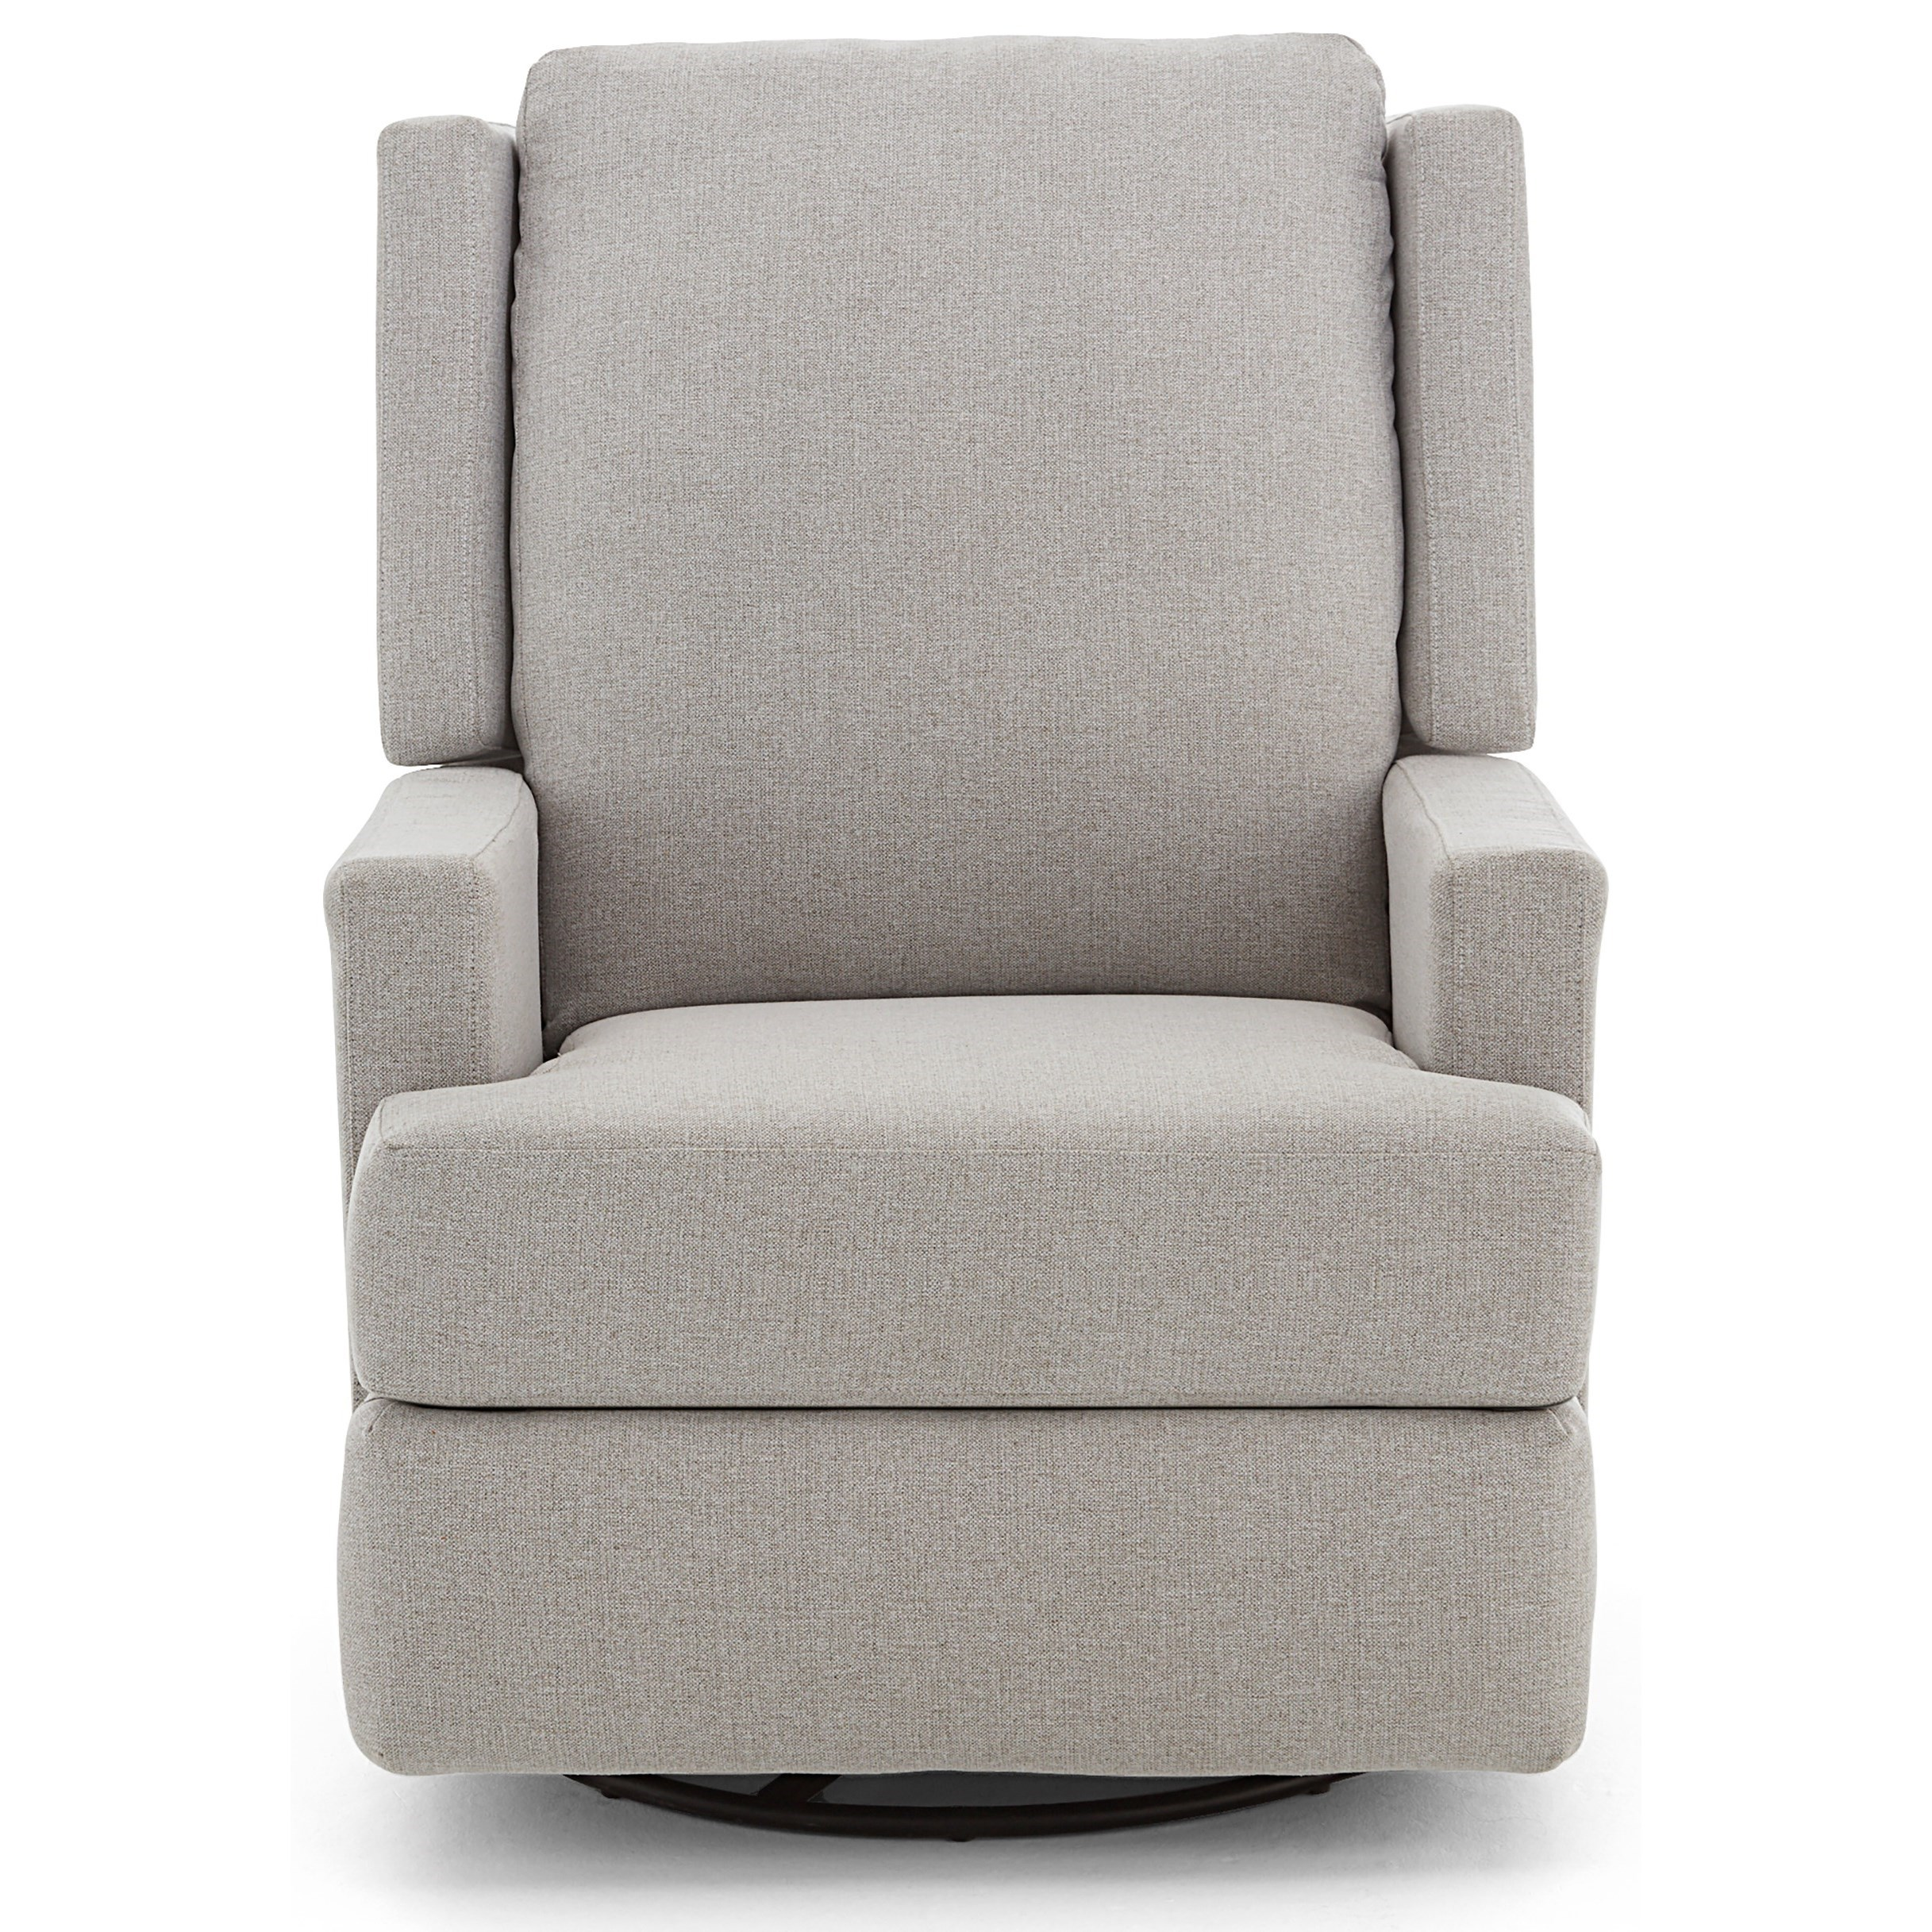 Ainsley Power Swivel Glider Recliner by Best Home Furnishings at Steger's Furniture